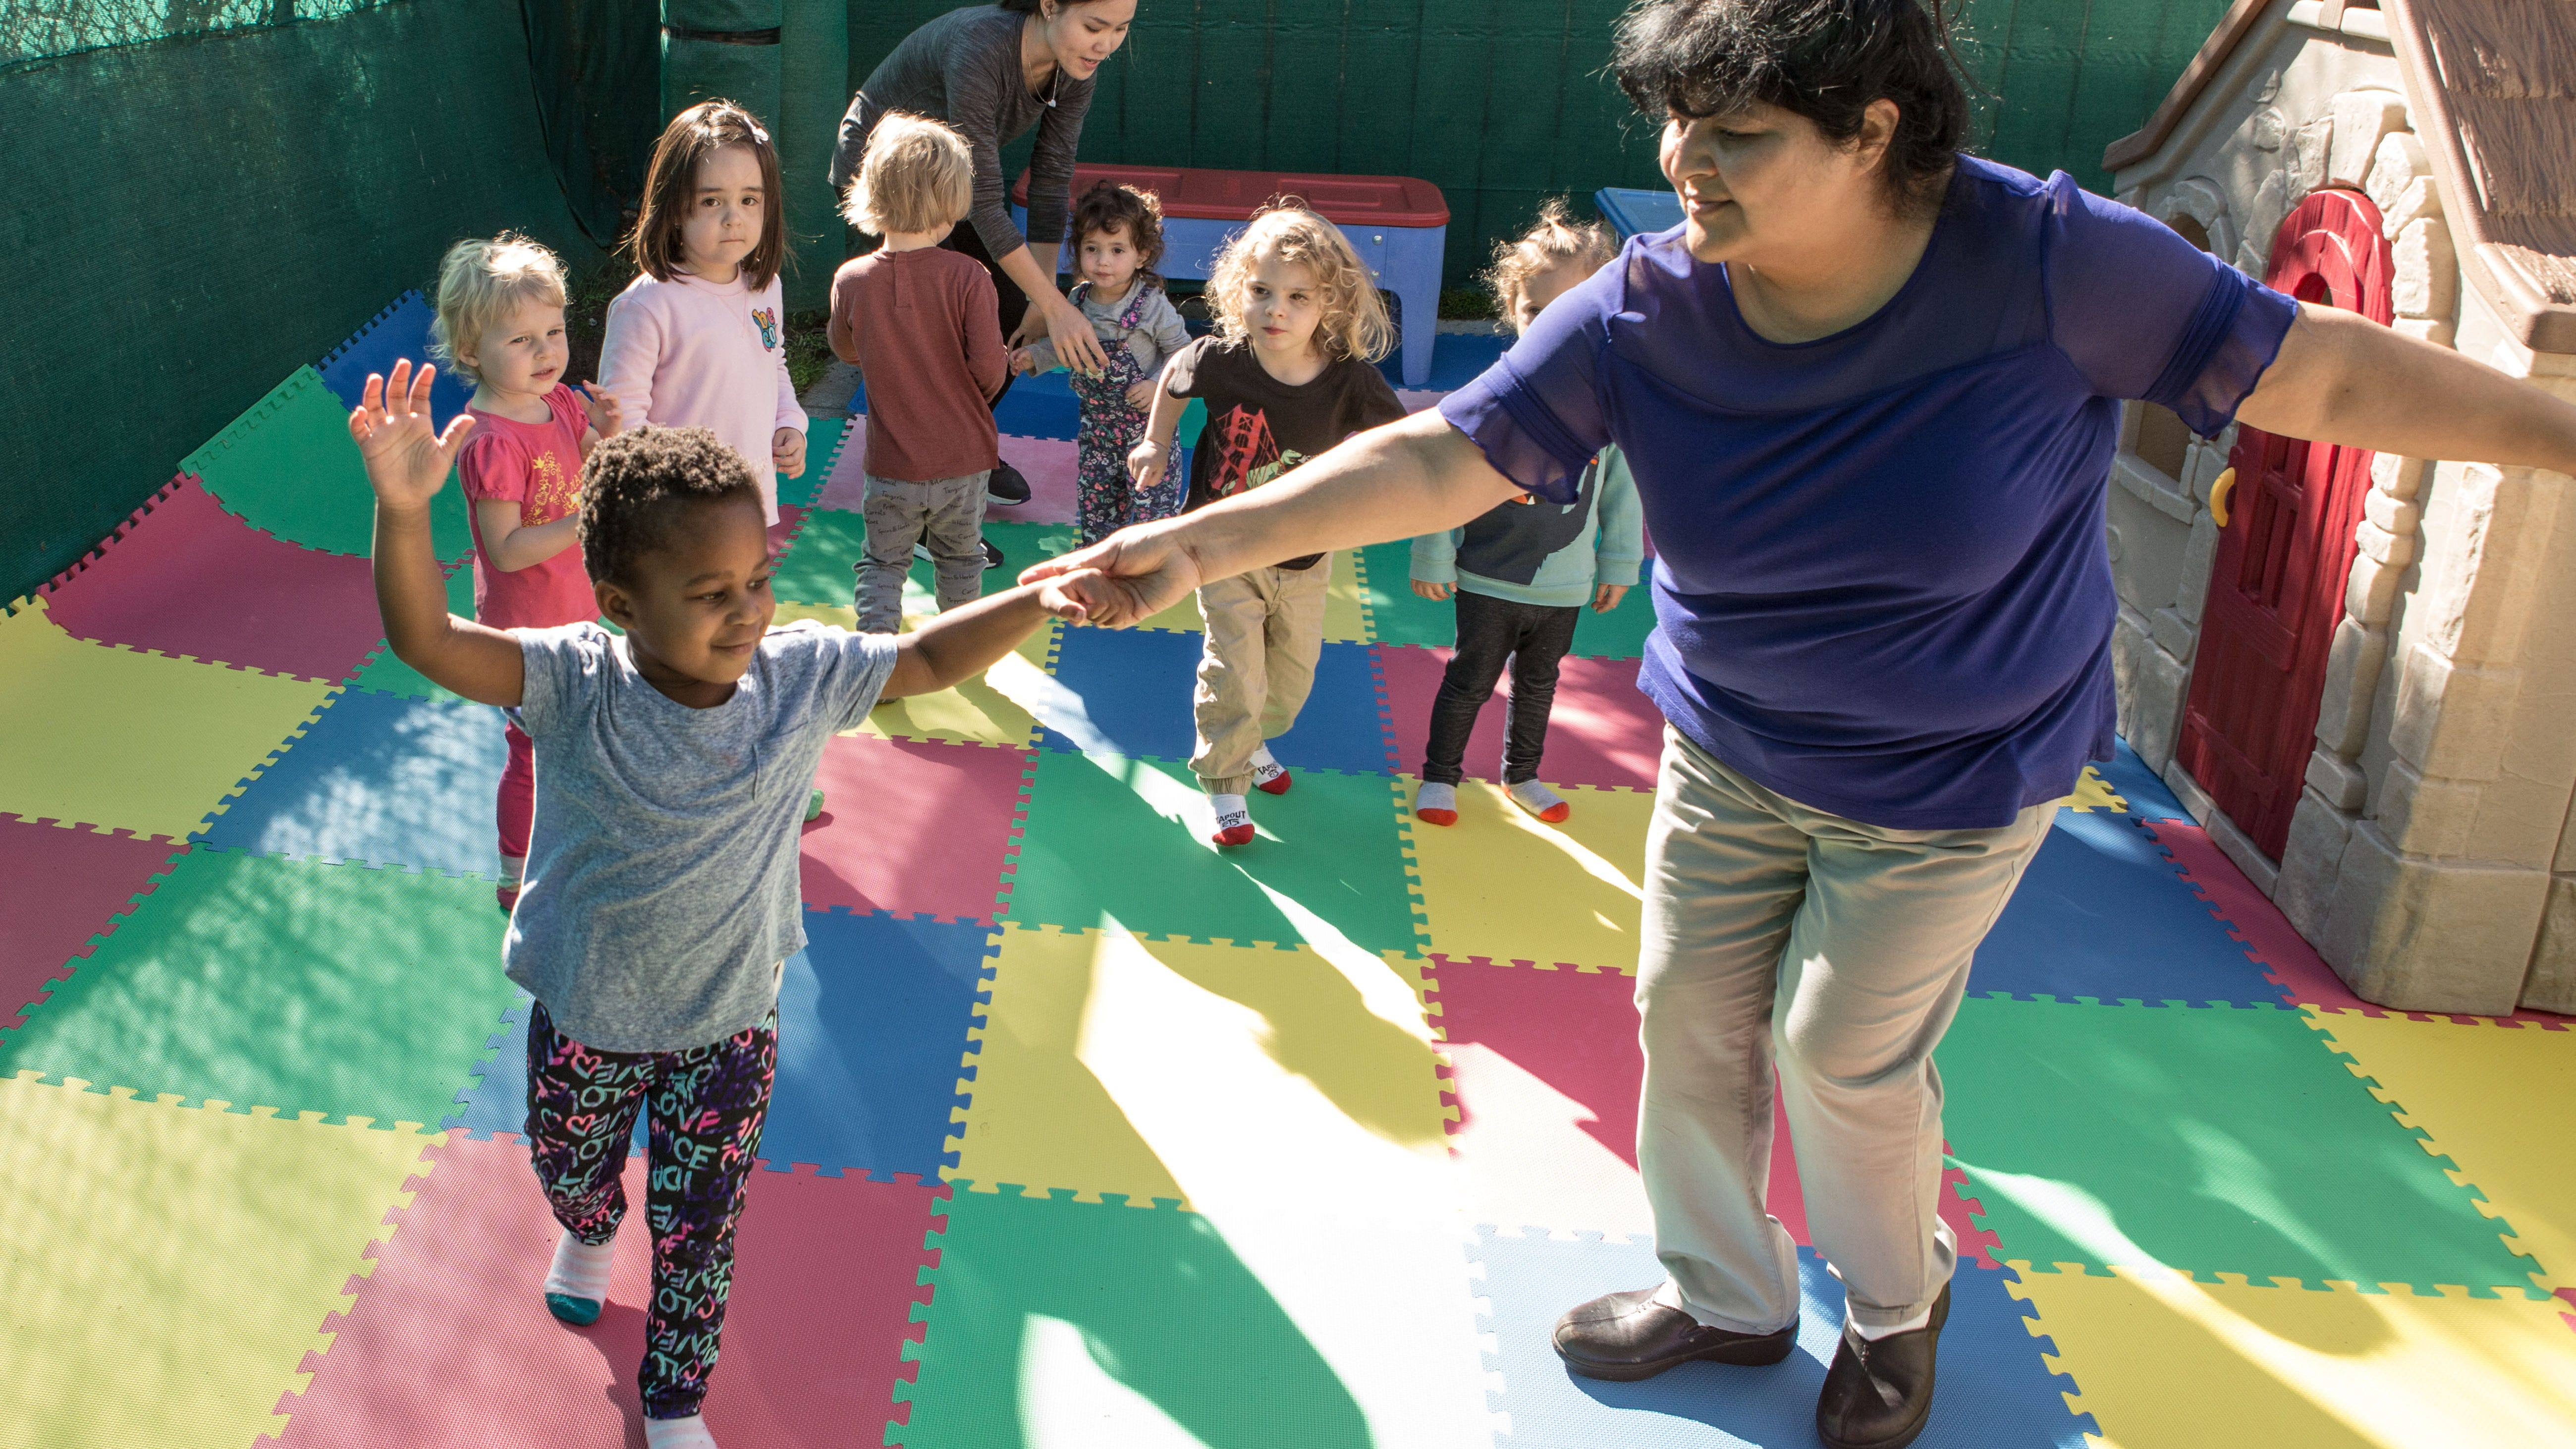 Heavy concern: When preschoolers gain weight too fast, their lifelong risk of obesity surges